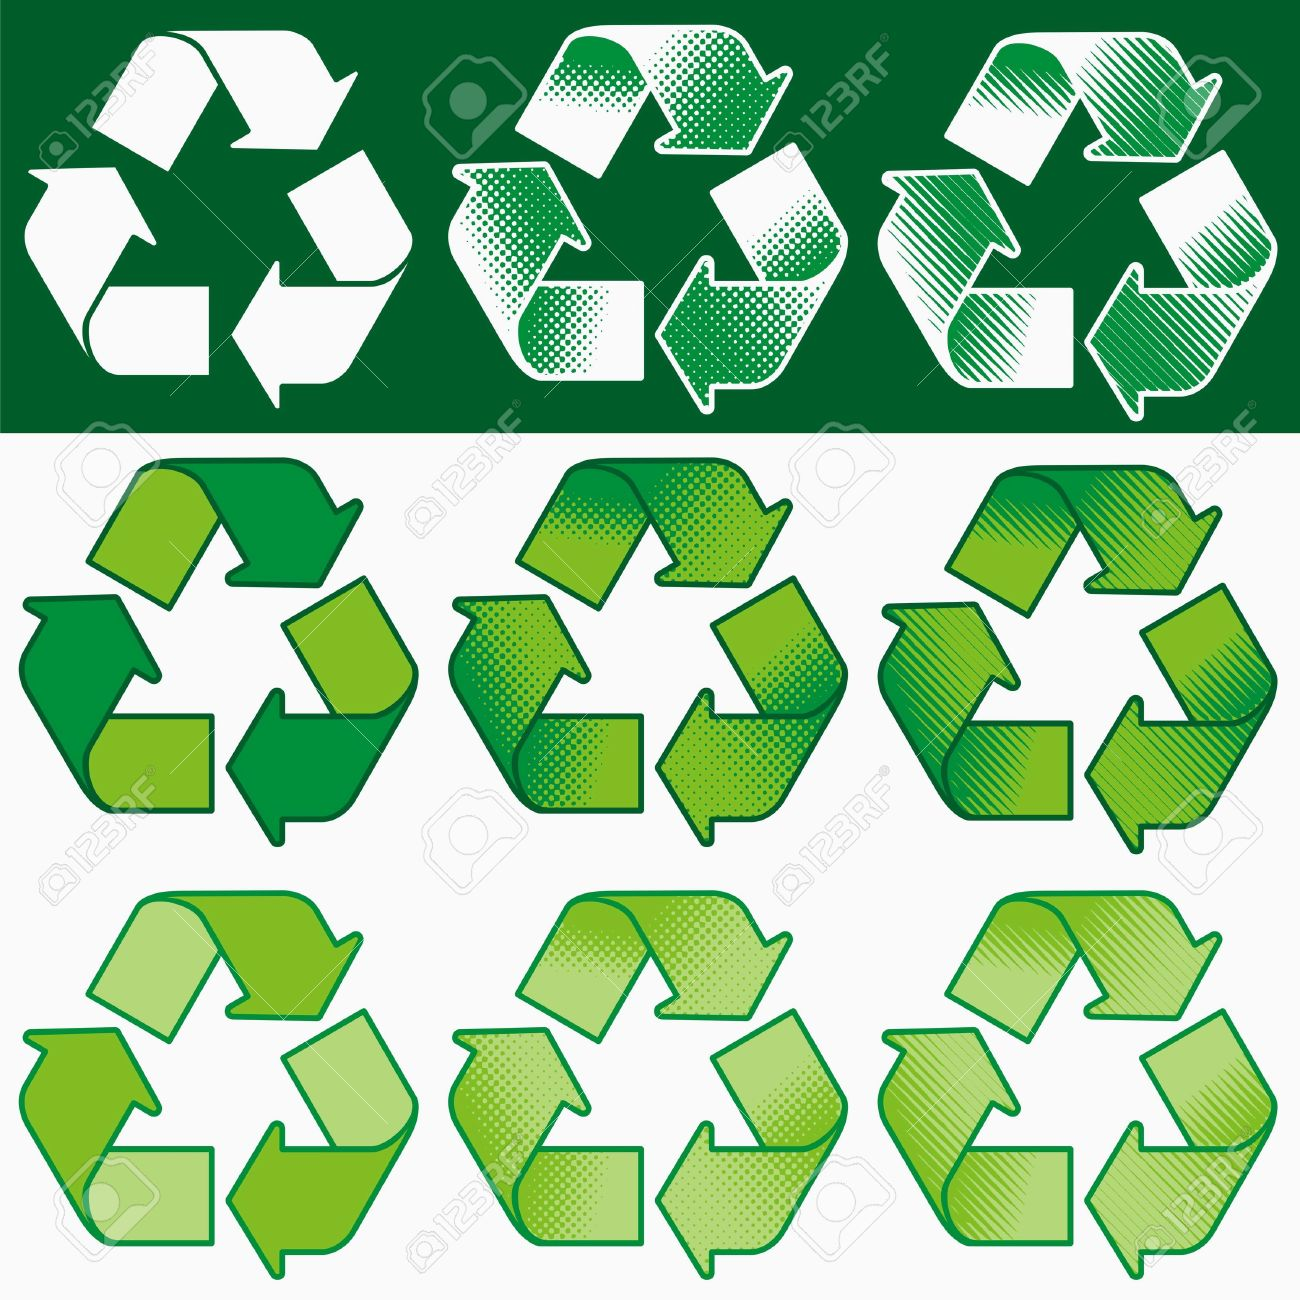 Vector recycling symbol with assorted coloring and shading options - 2626794